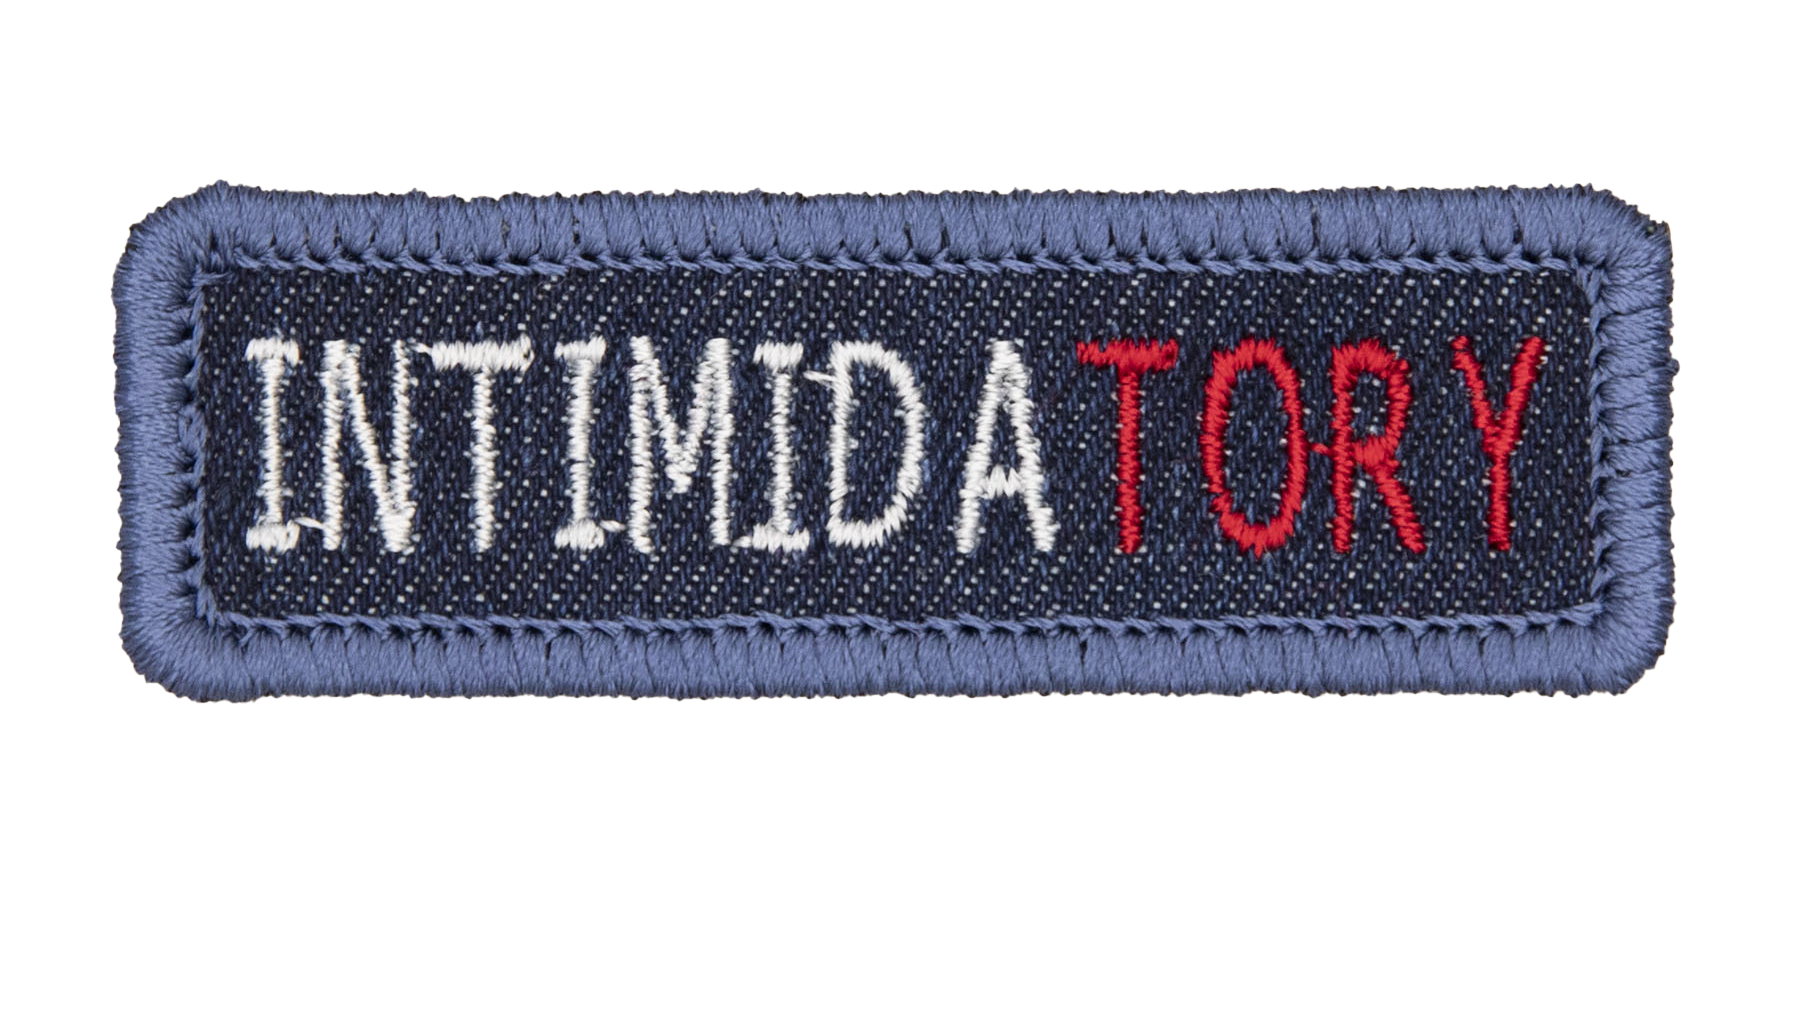 blue denim patch embroidered with the word INTIMIDATORY patches as protest